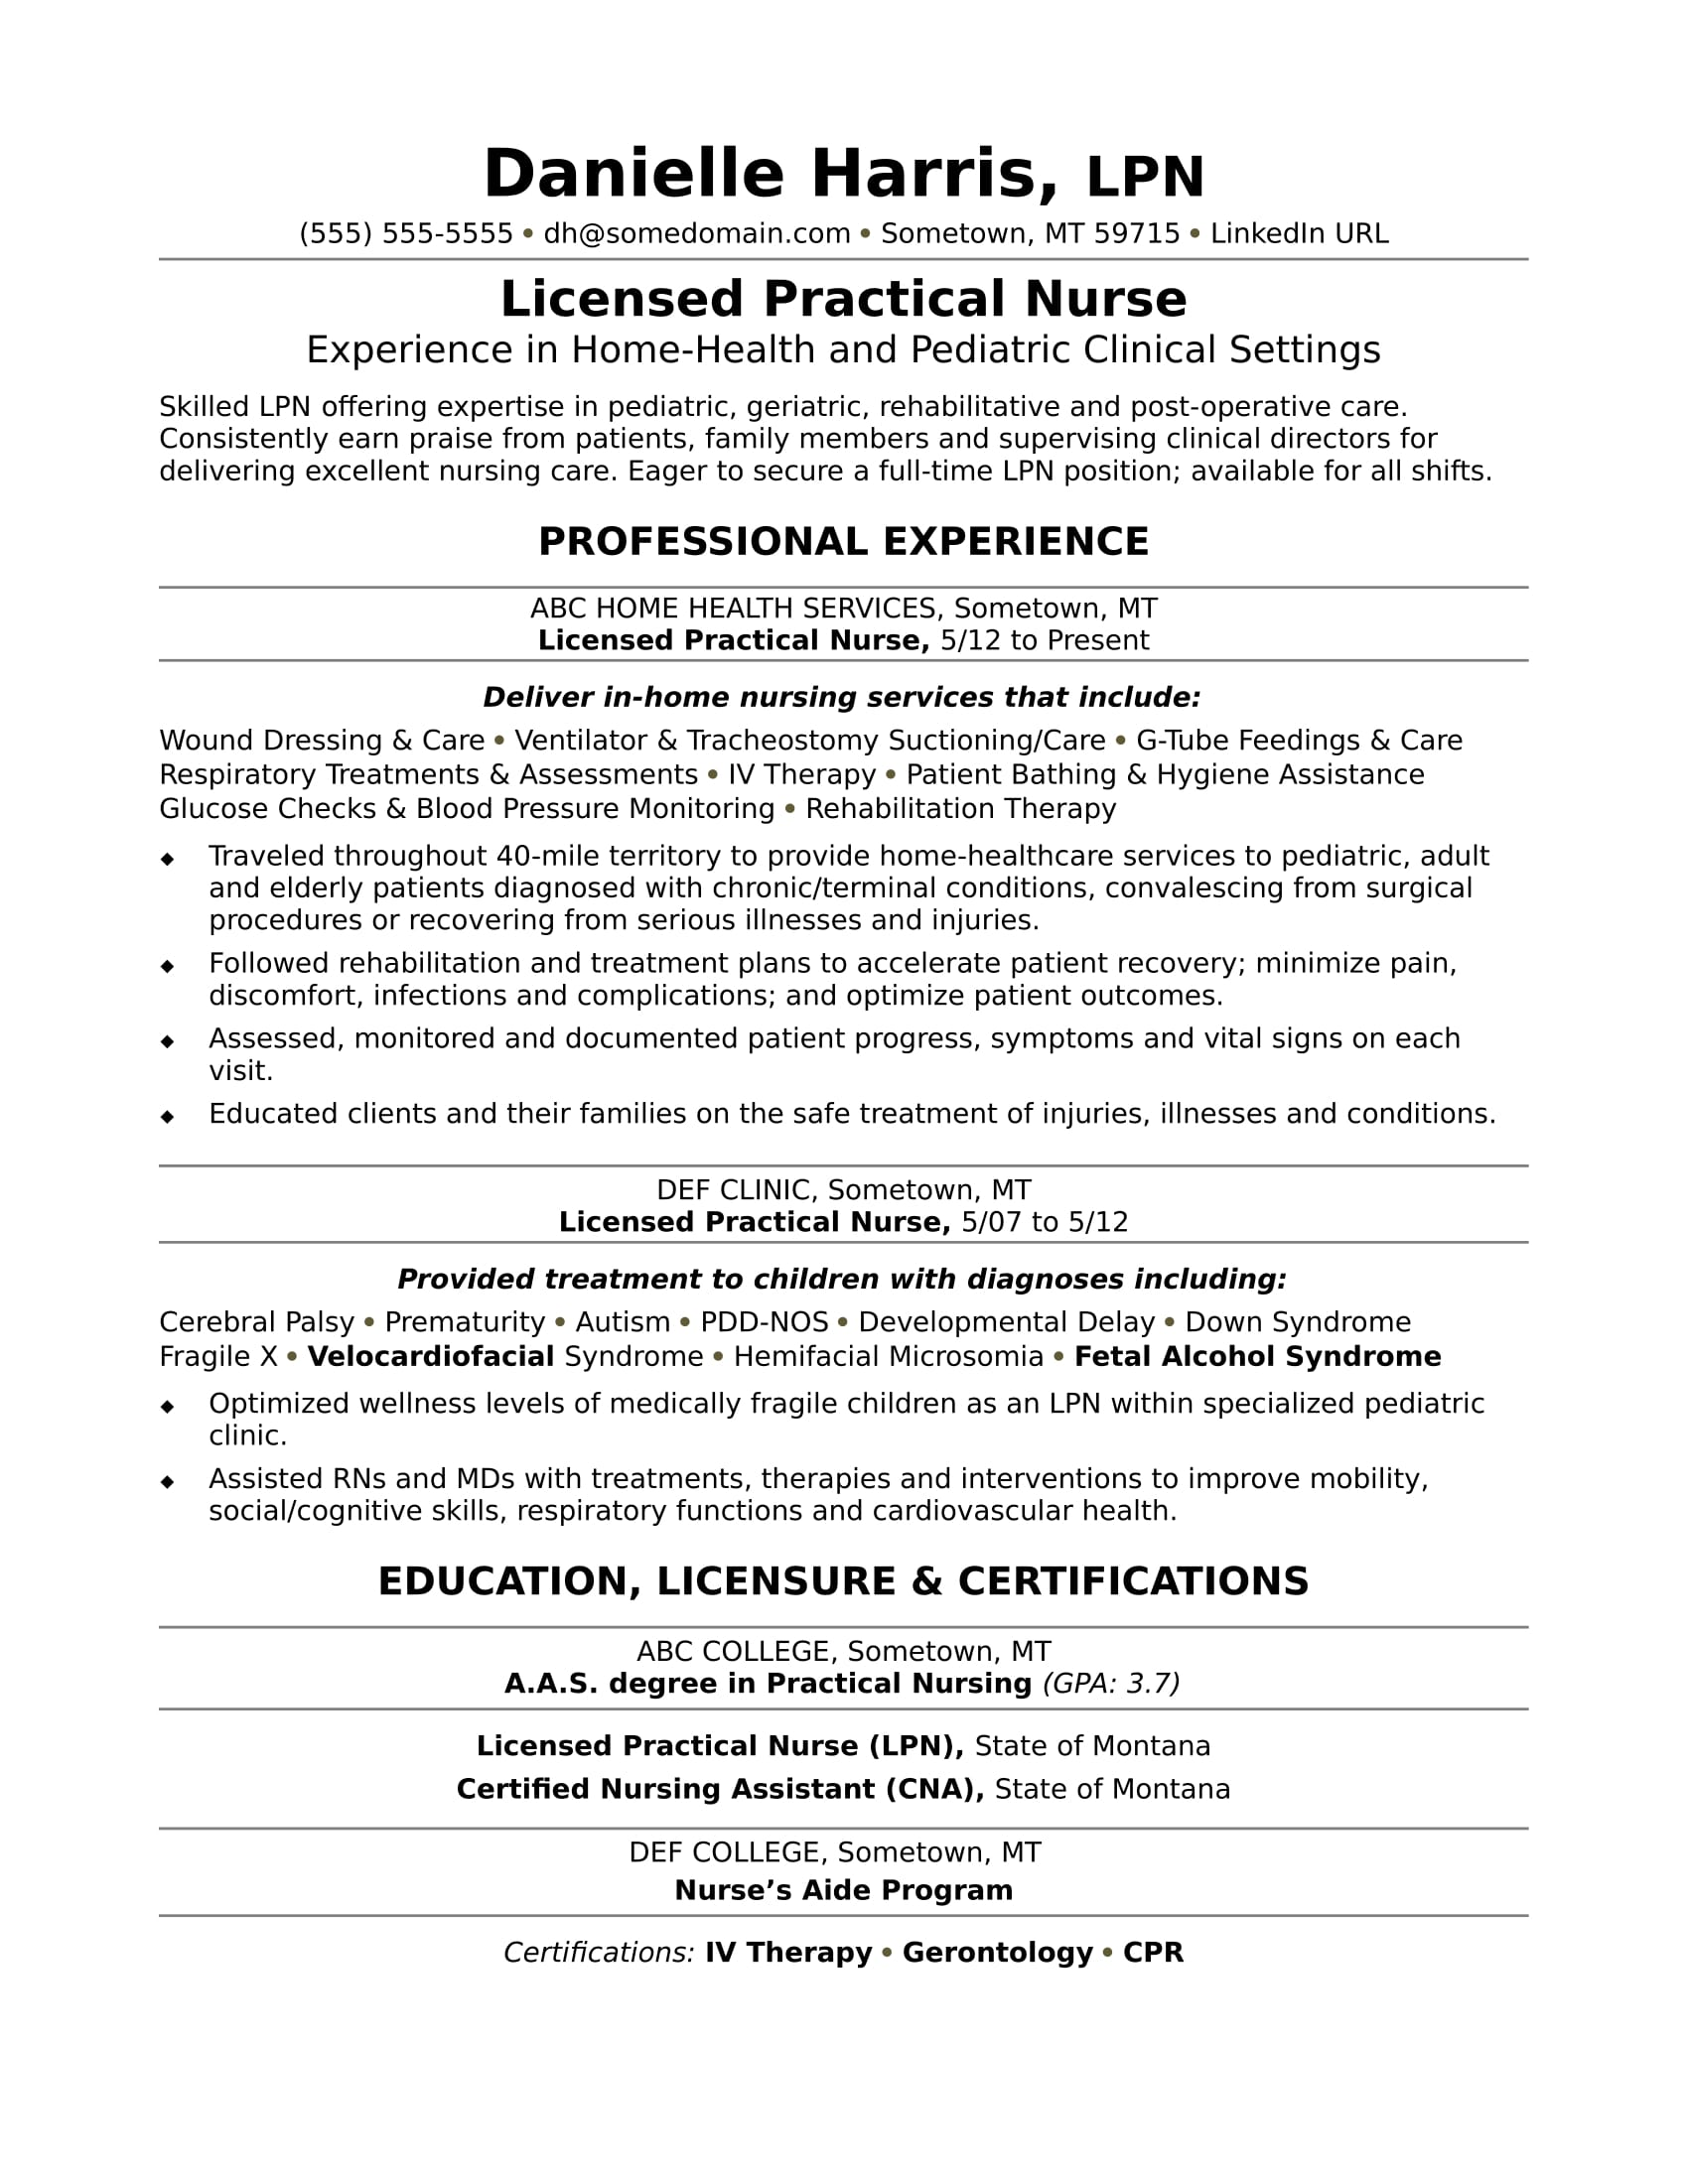 Licensed Practical Nurse Resume Sample  Rehab Nurse Resume